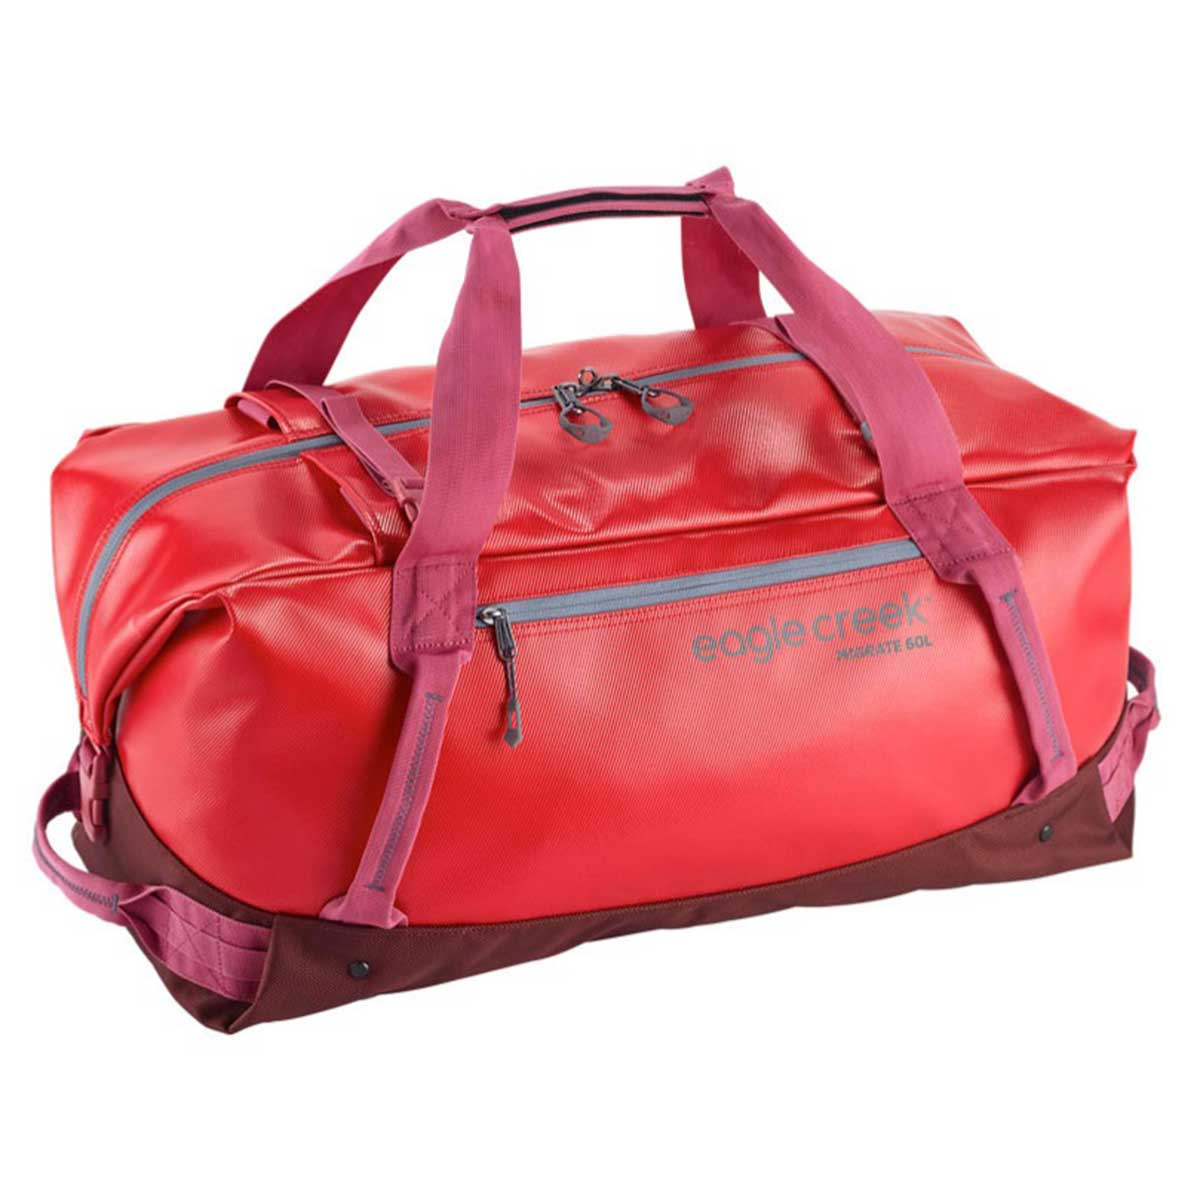 Eagle Creek Migrate 60L Duffel in Coral Sunset